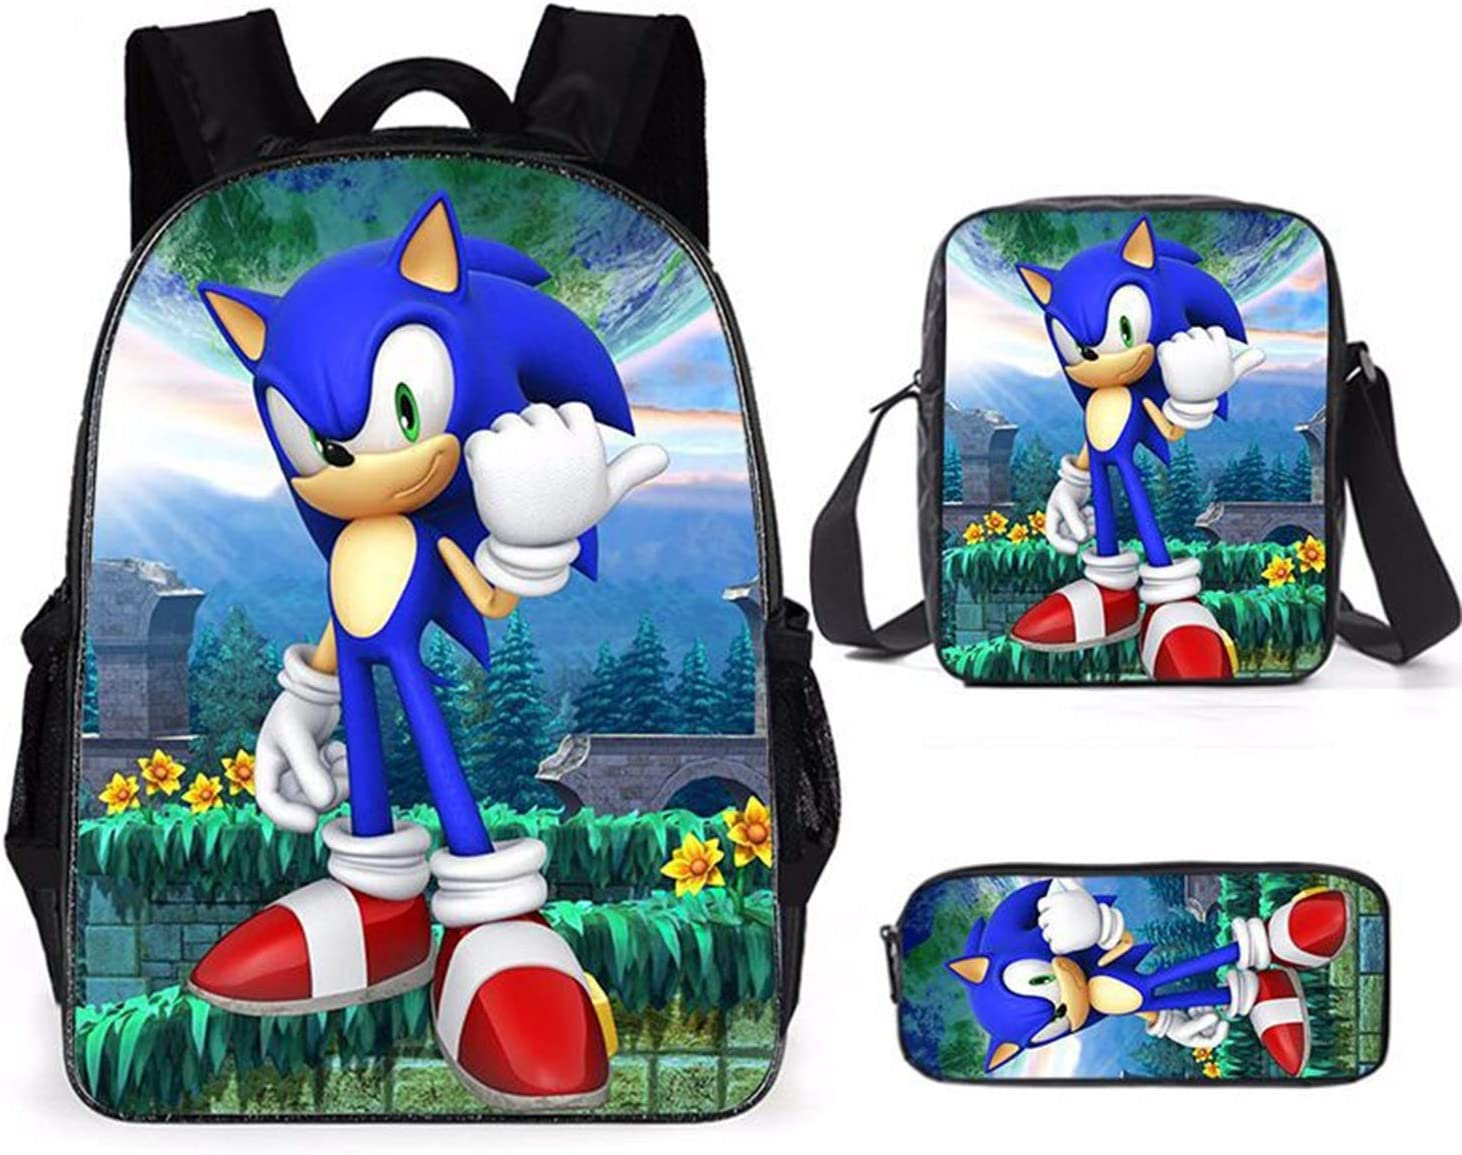 School Supplies Kit for Children Kids Boys and Girls Casual Shoulder Bag and Animal Forest Crossing Pencil Case Color-1 The Hedgehog Retro Style Backpack Rucksack